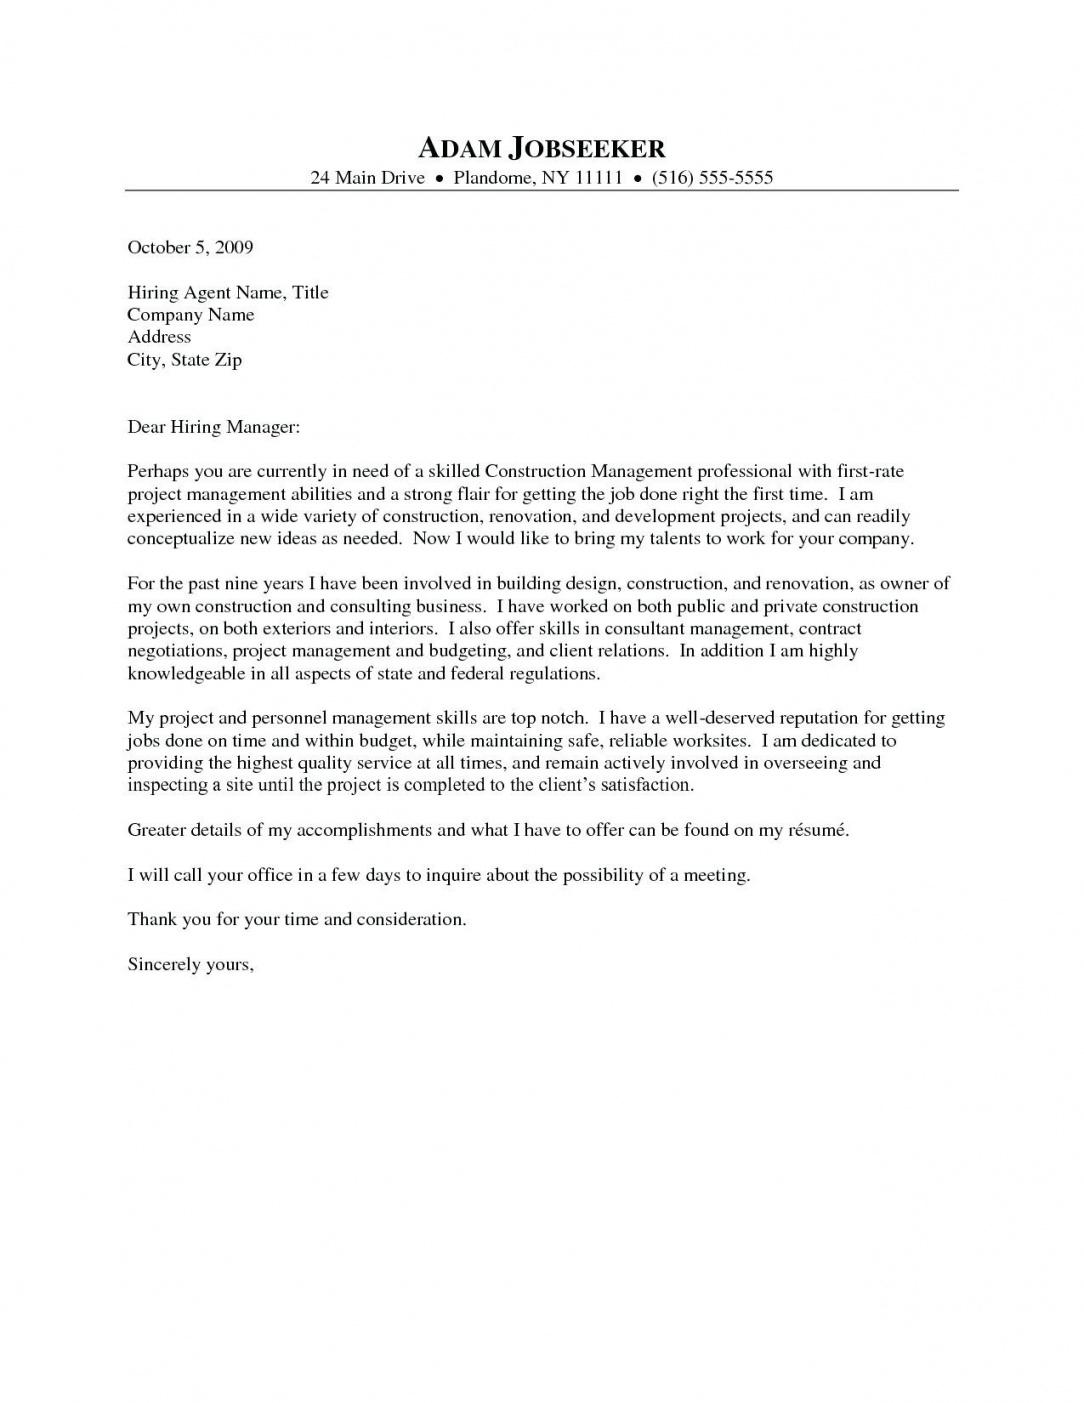 Free Sample Of Cover Letter Free Sample Cover Letter For Project Manager Job New Construction